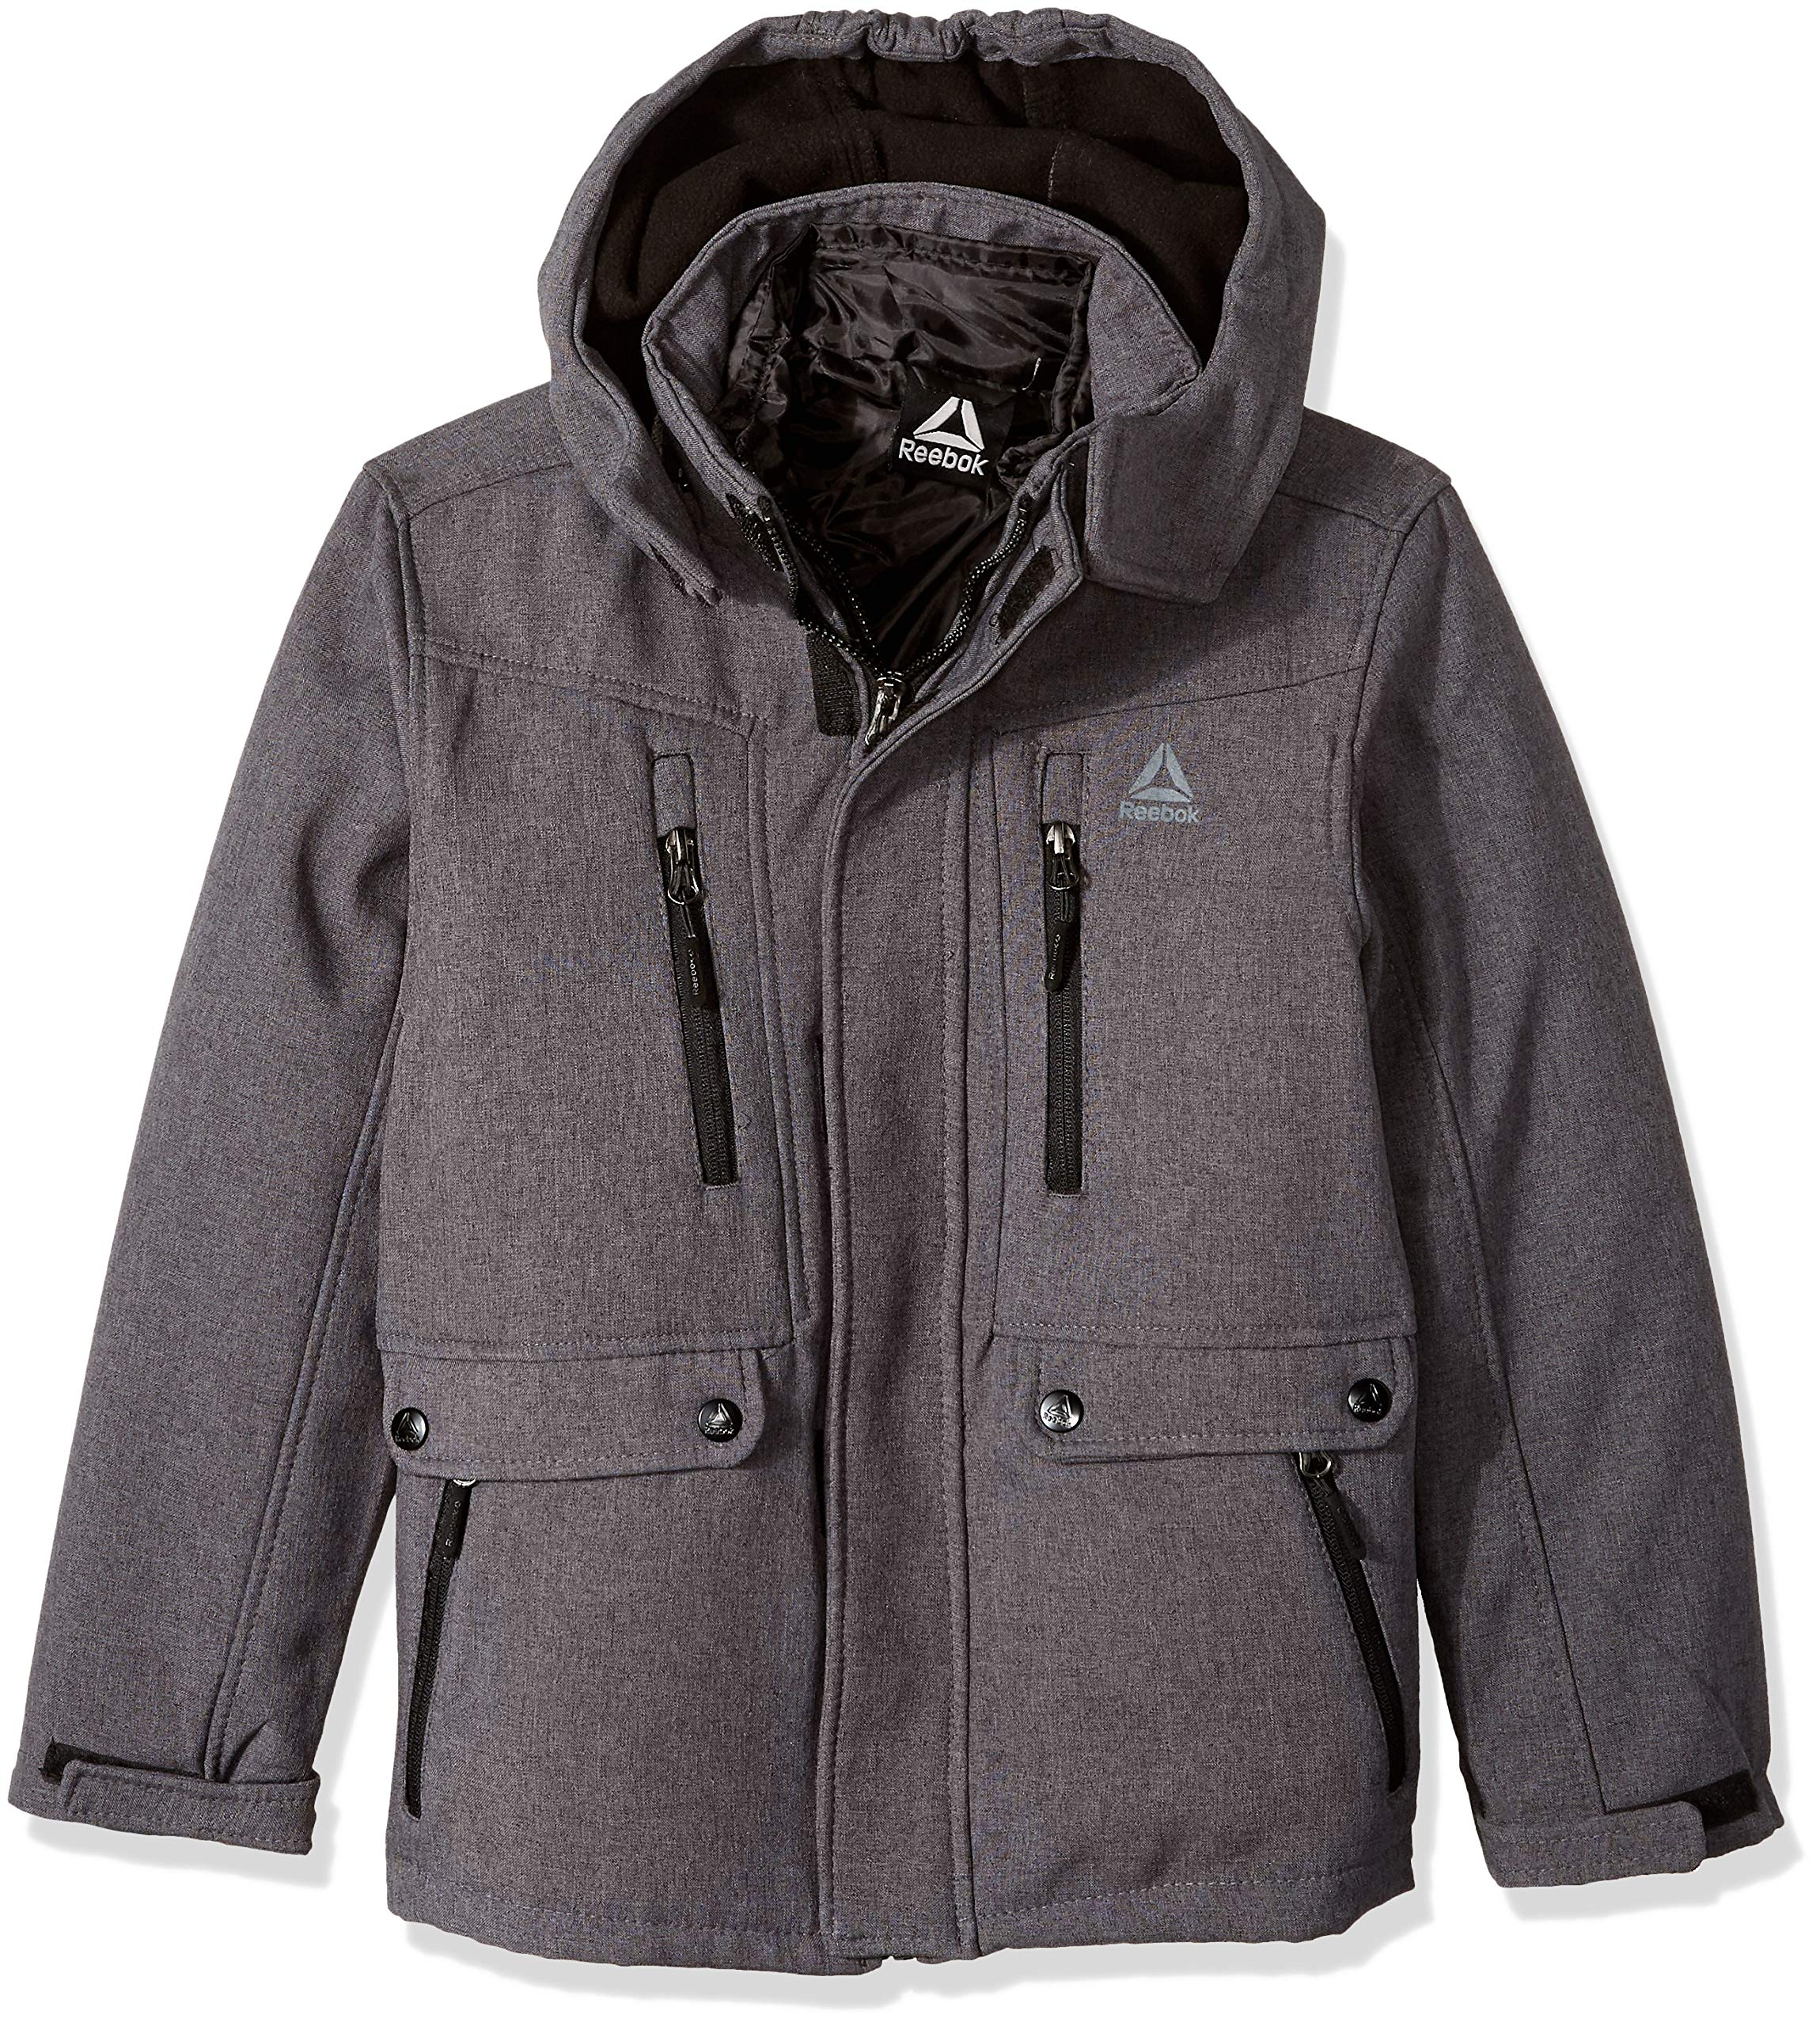 Reebok Boys' Little Active Systems Jacket with Zip Pockets, Charcoal, 7